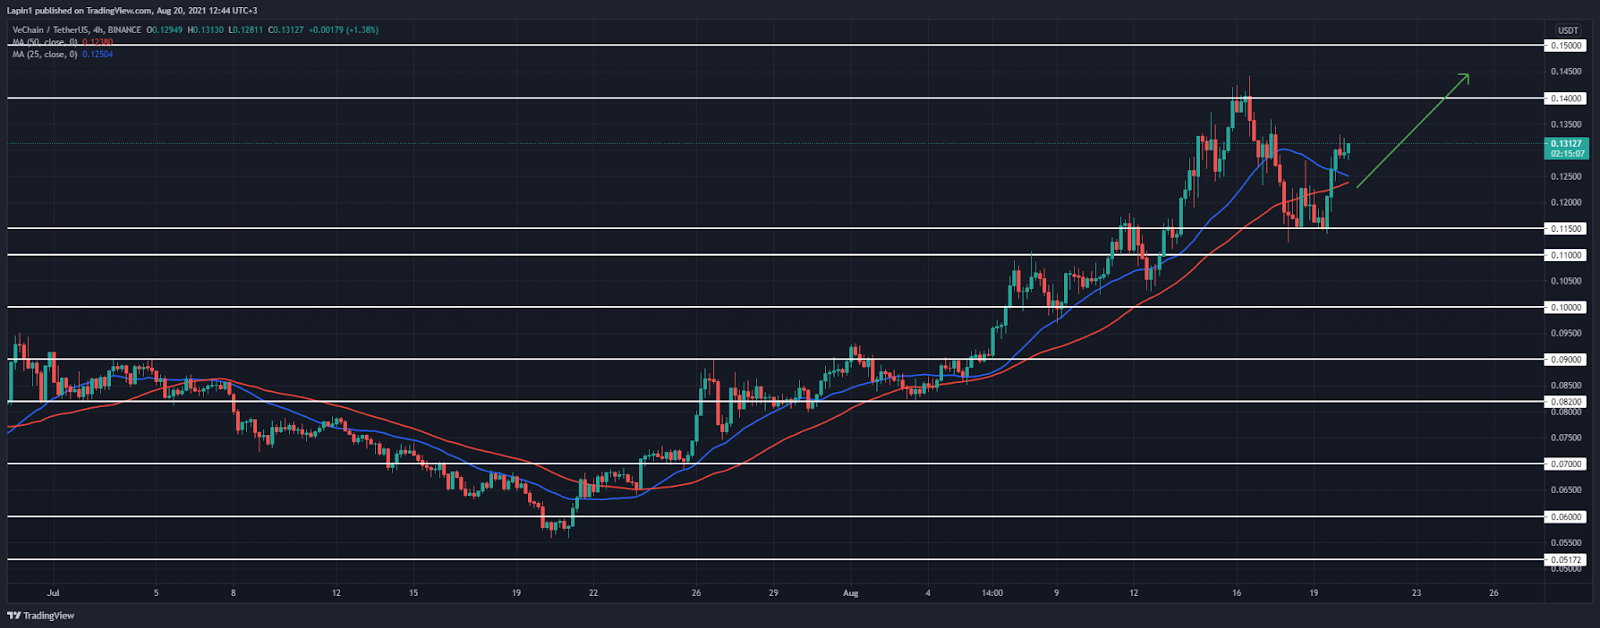 VeChain Price Analysis: VET rallies from $0.115 support, ready to test previous high today?